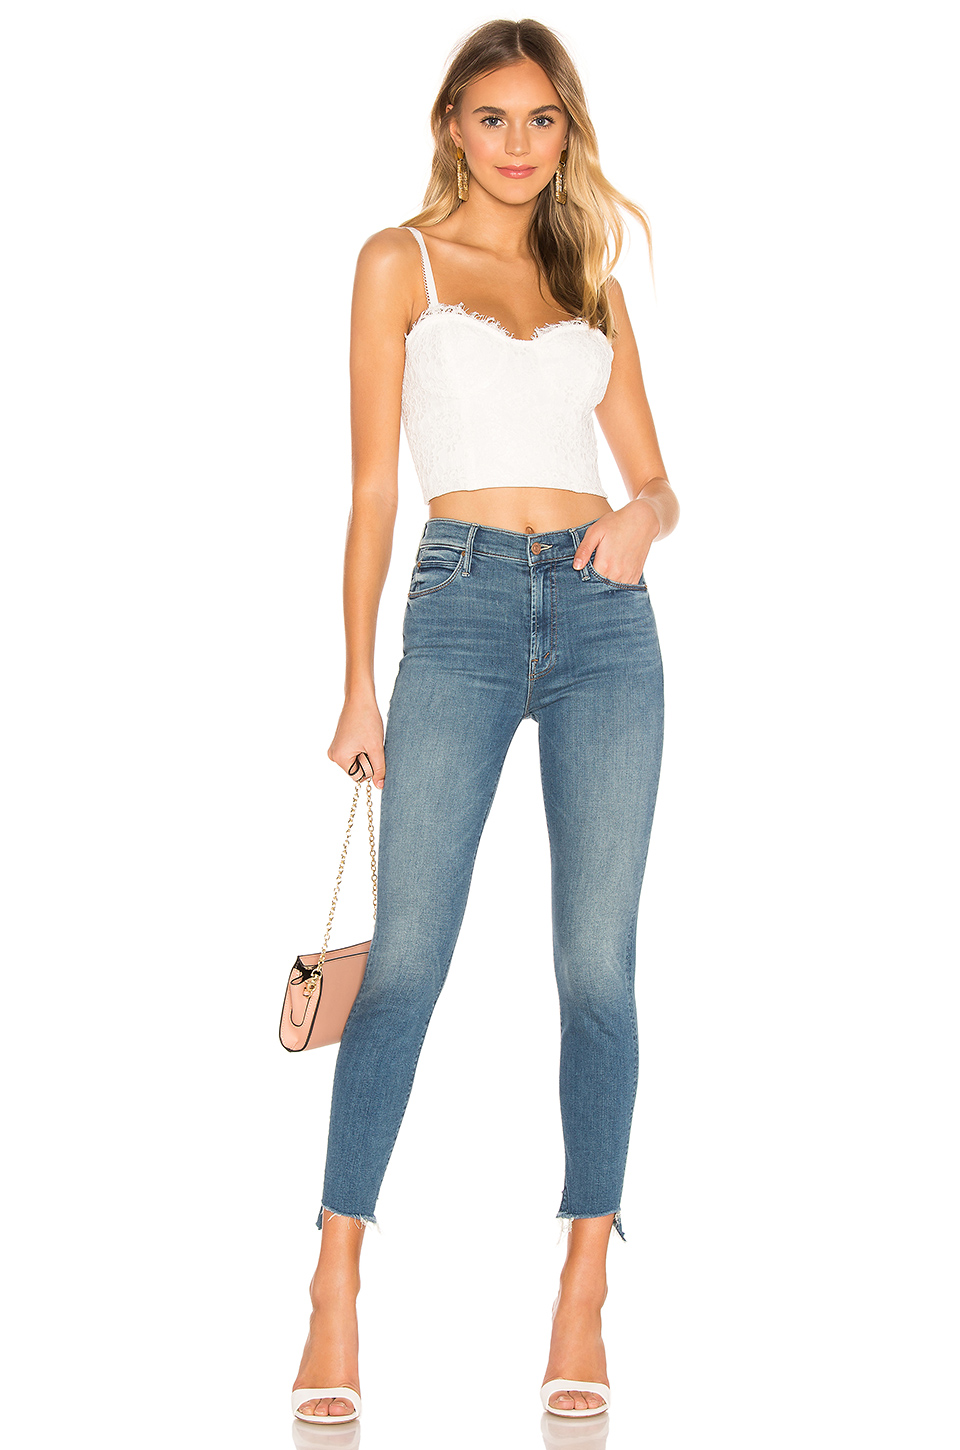 CAMI NYC The Scarlett Crop Top